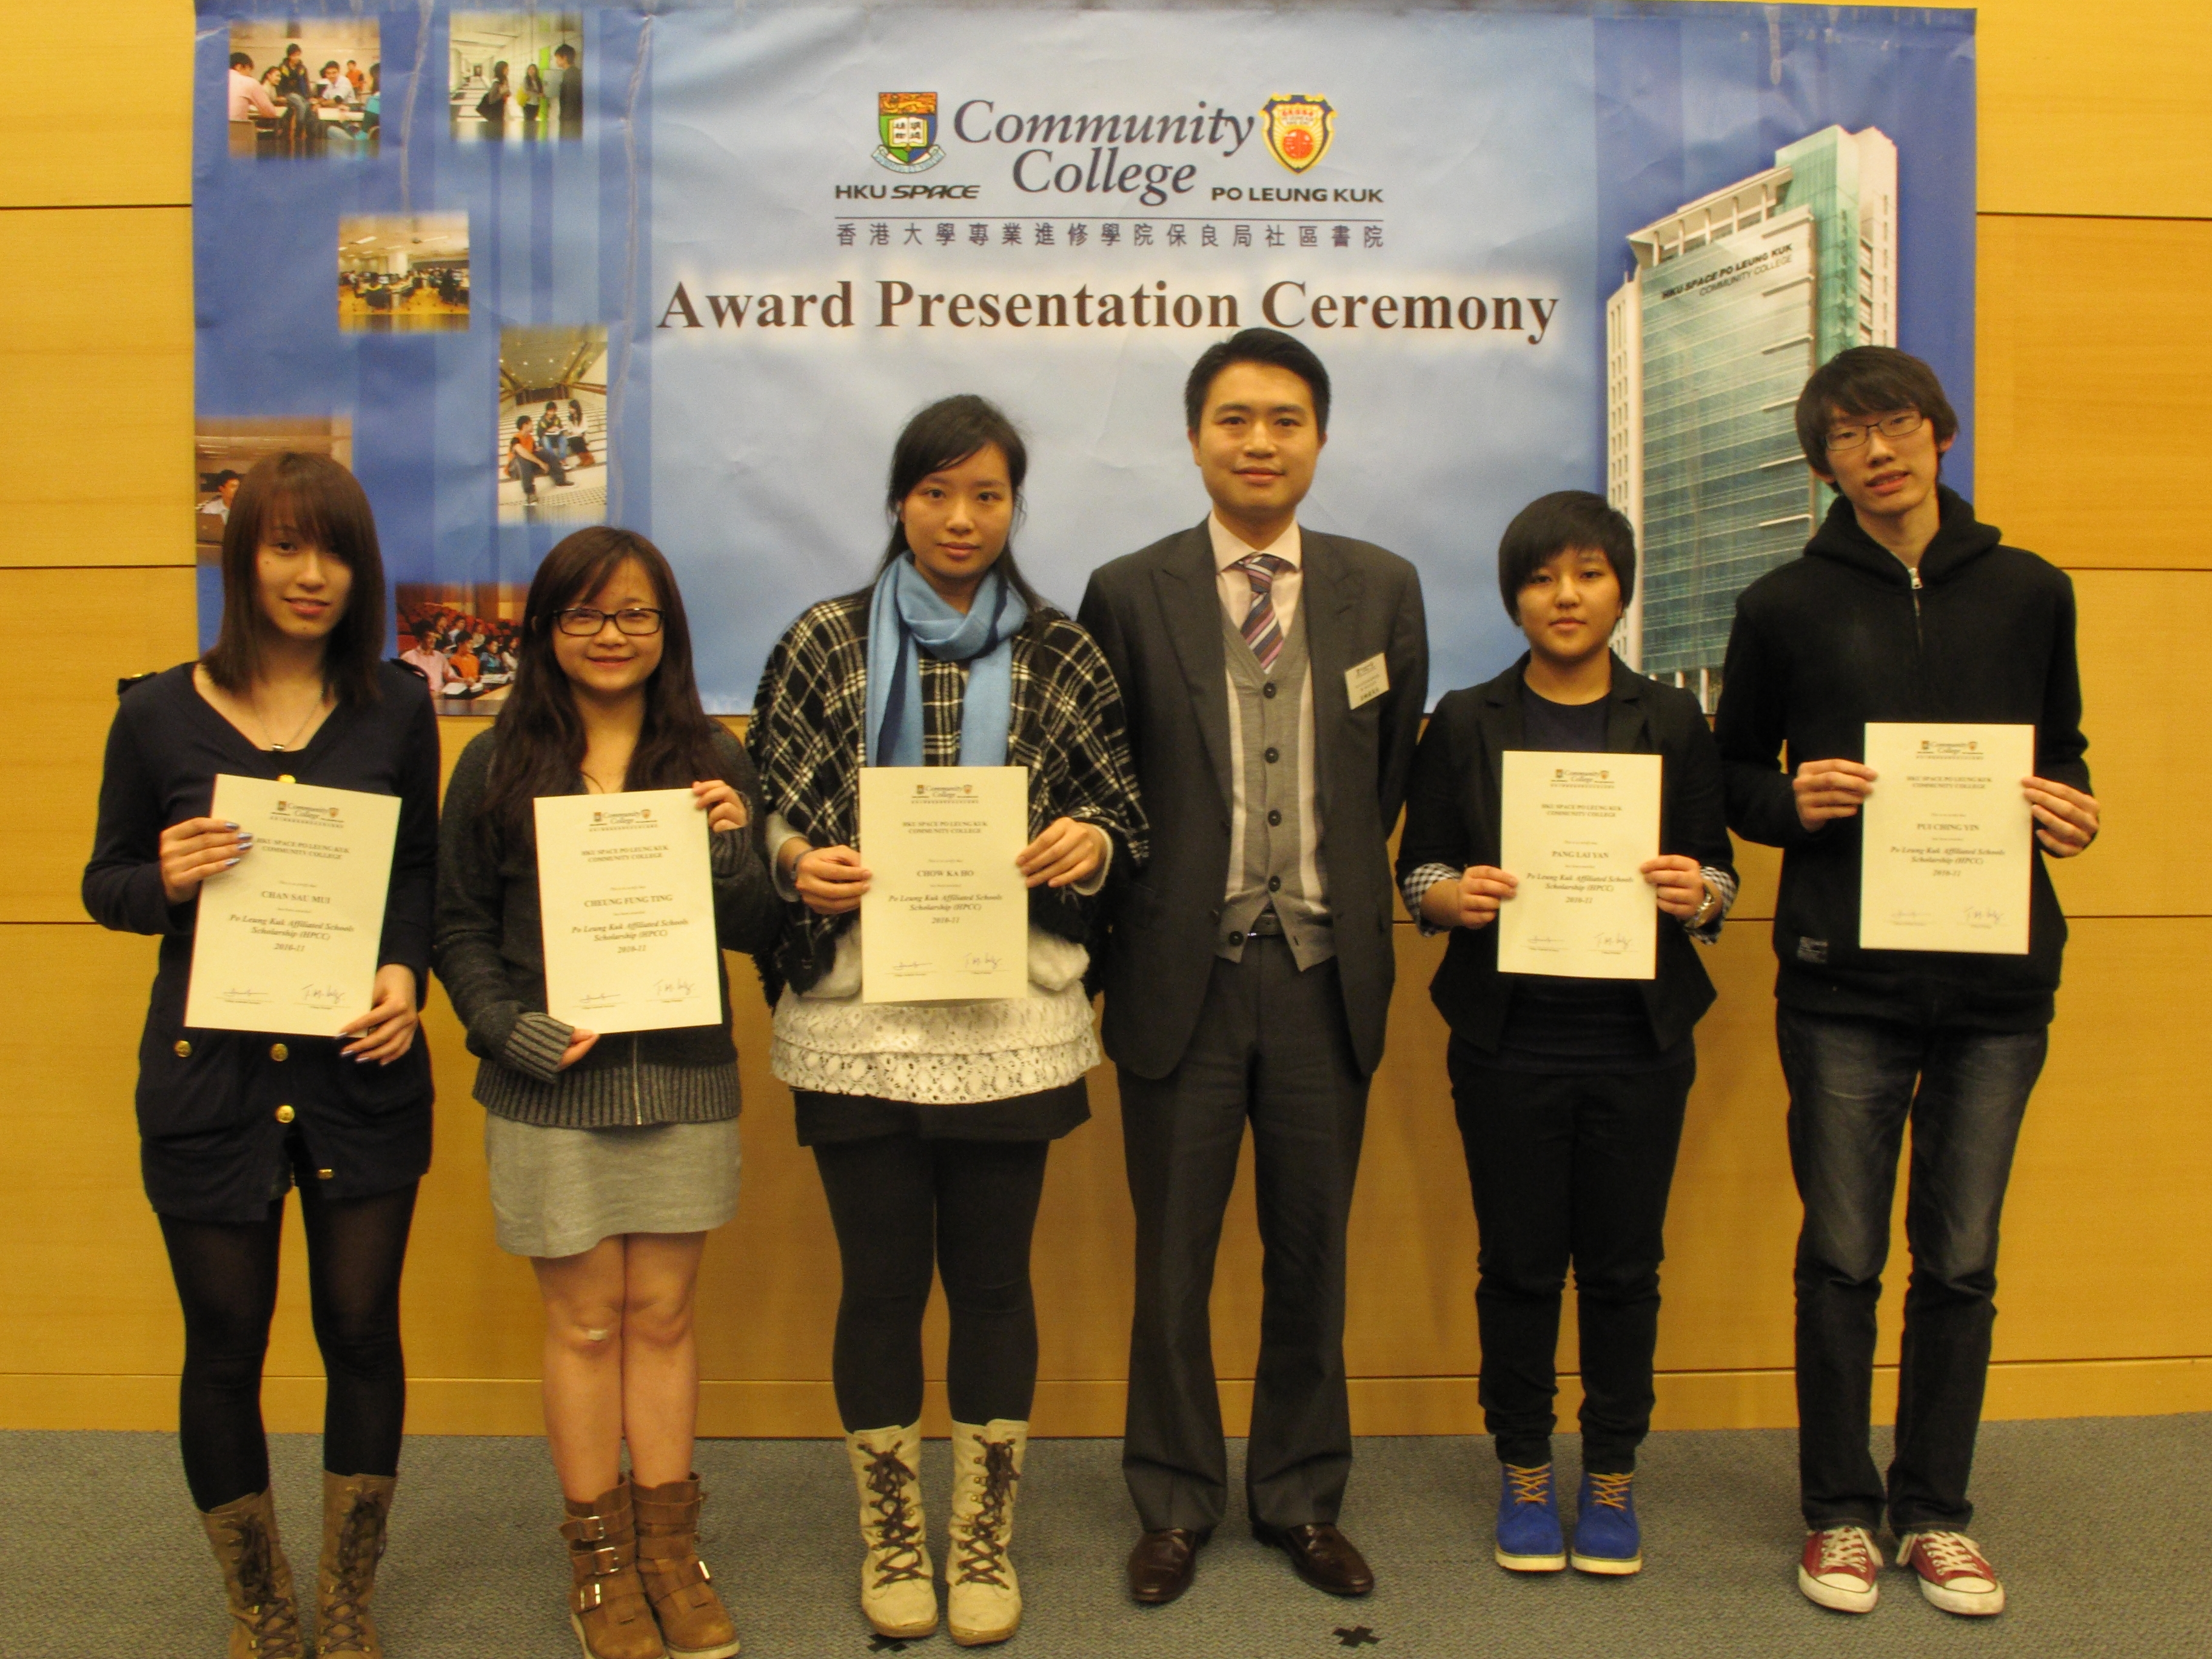 Award Presentation Ceremony 2011 - Photo - 39